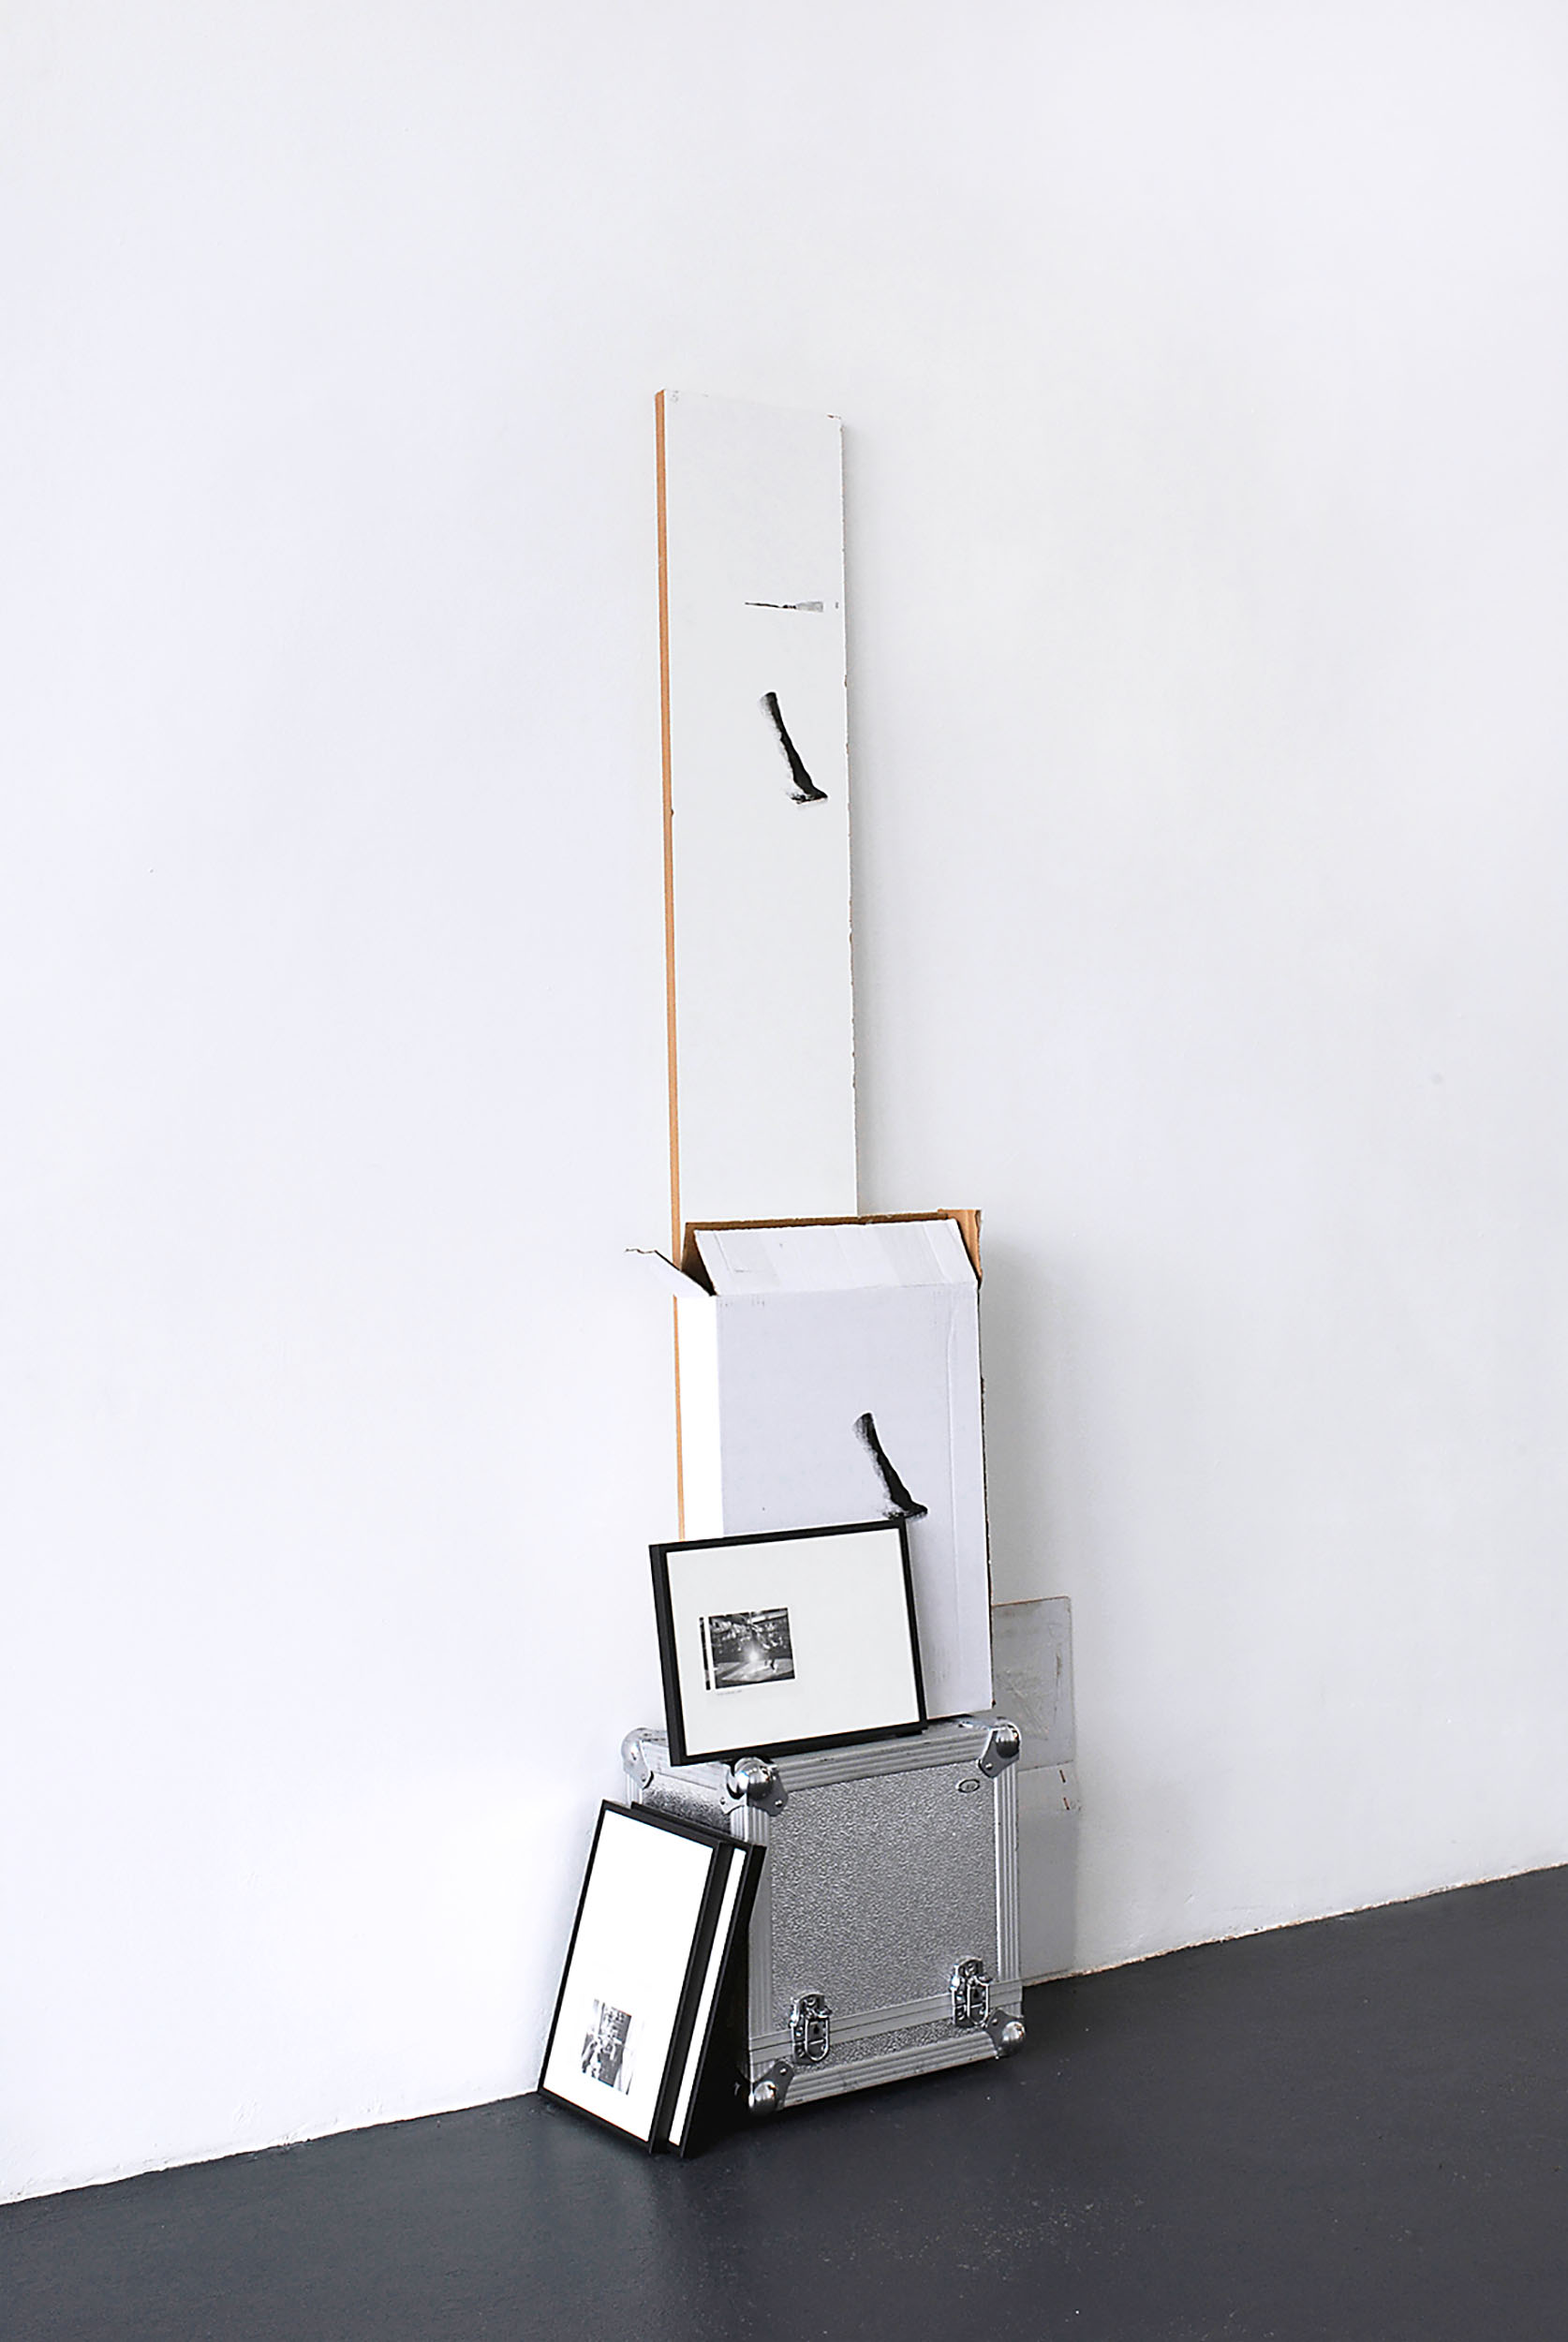 Installation IV (Fanny Eßler's right foot), 2010_small.jpg